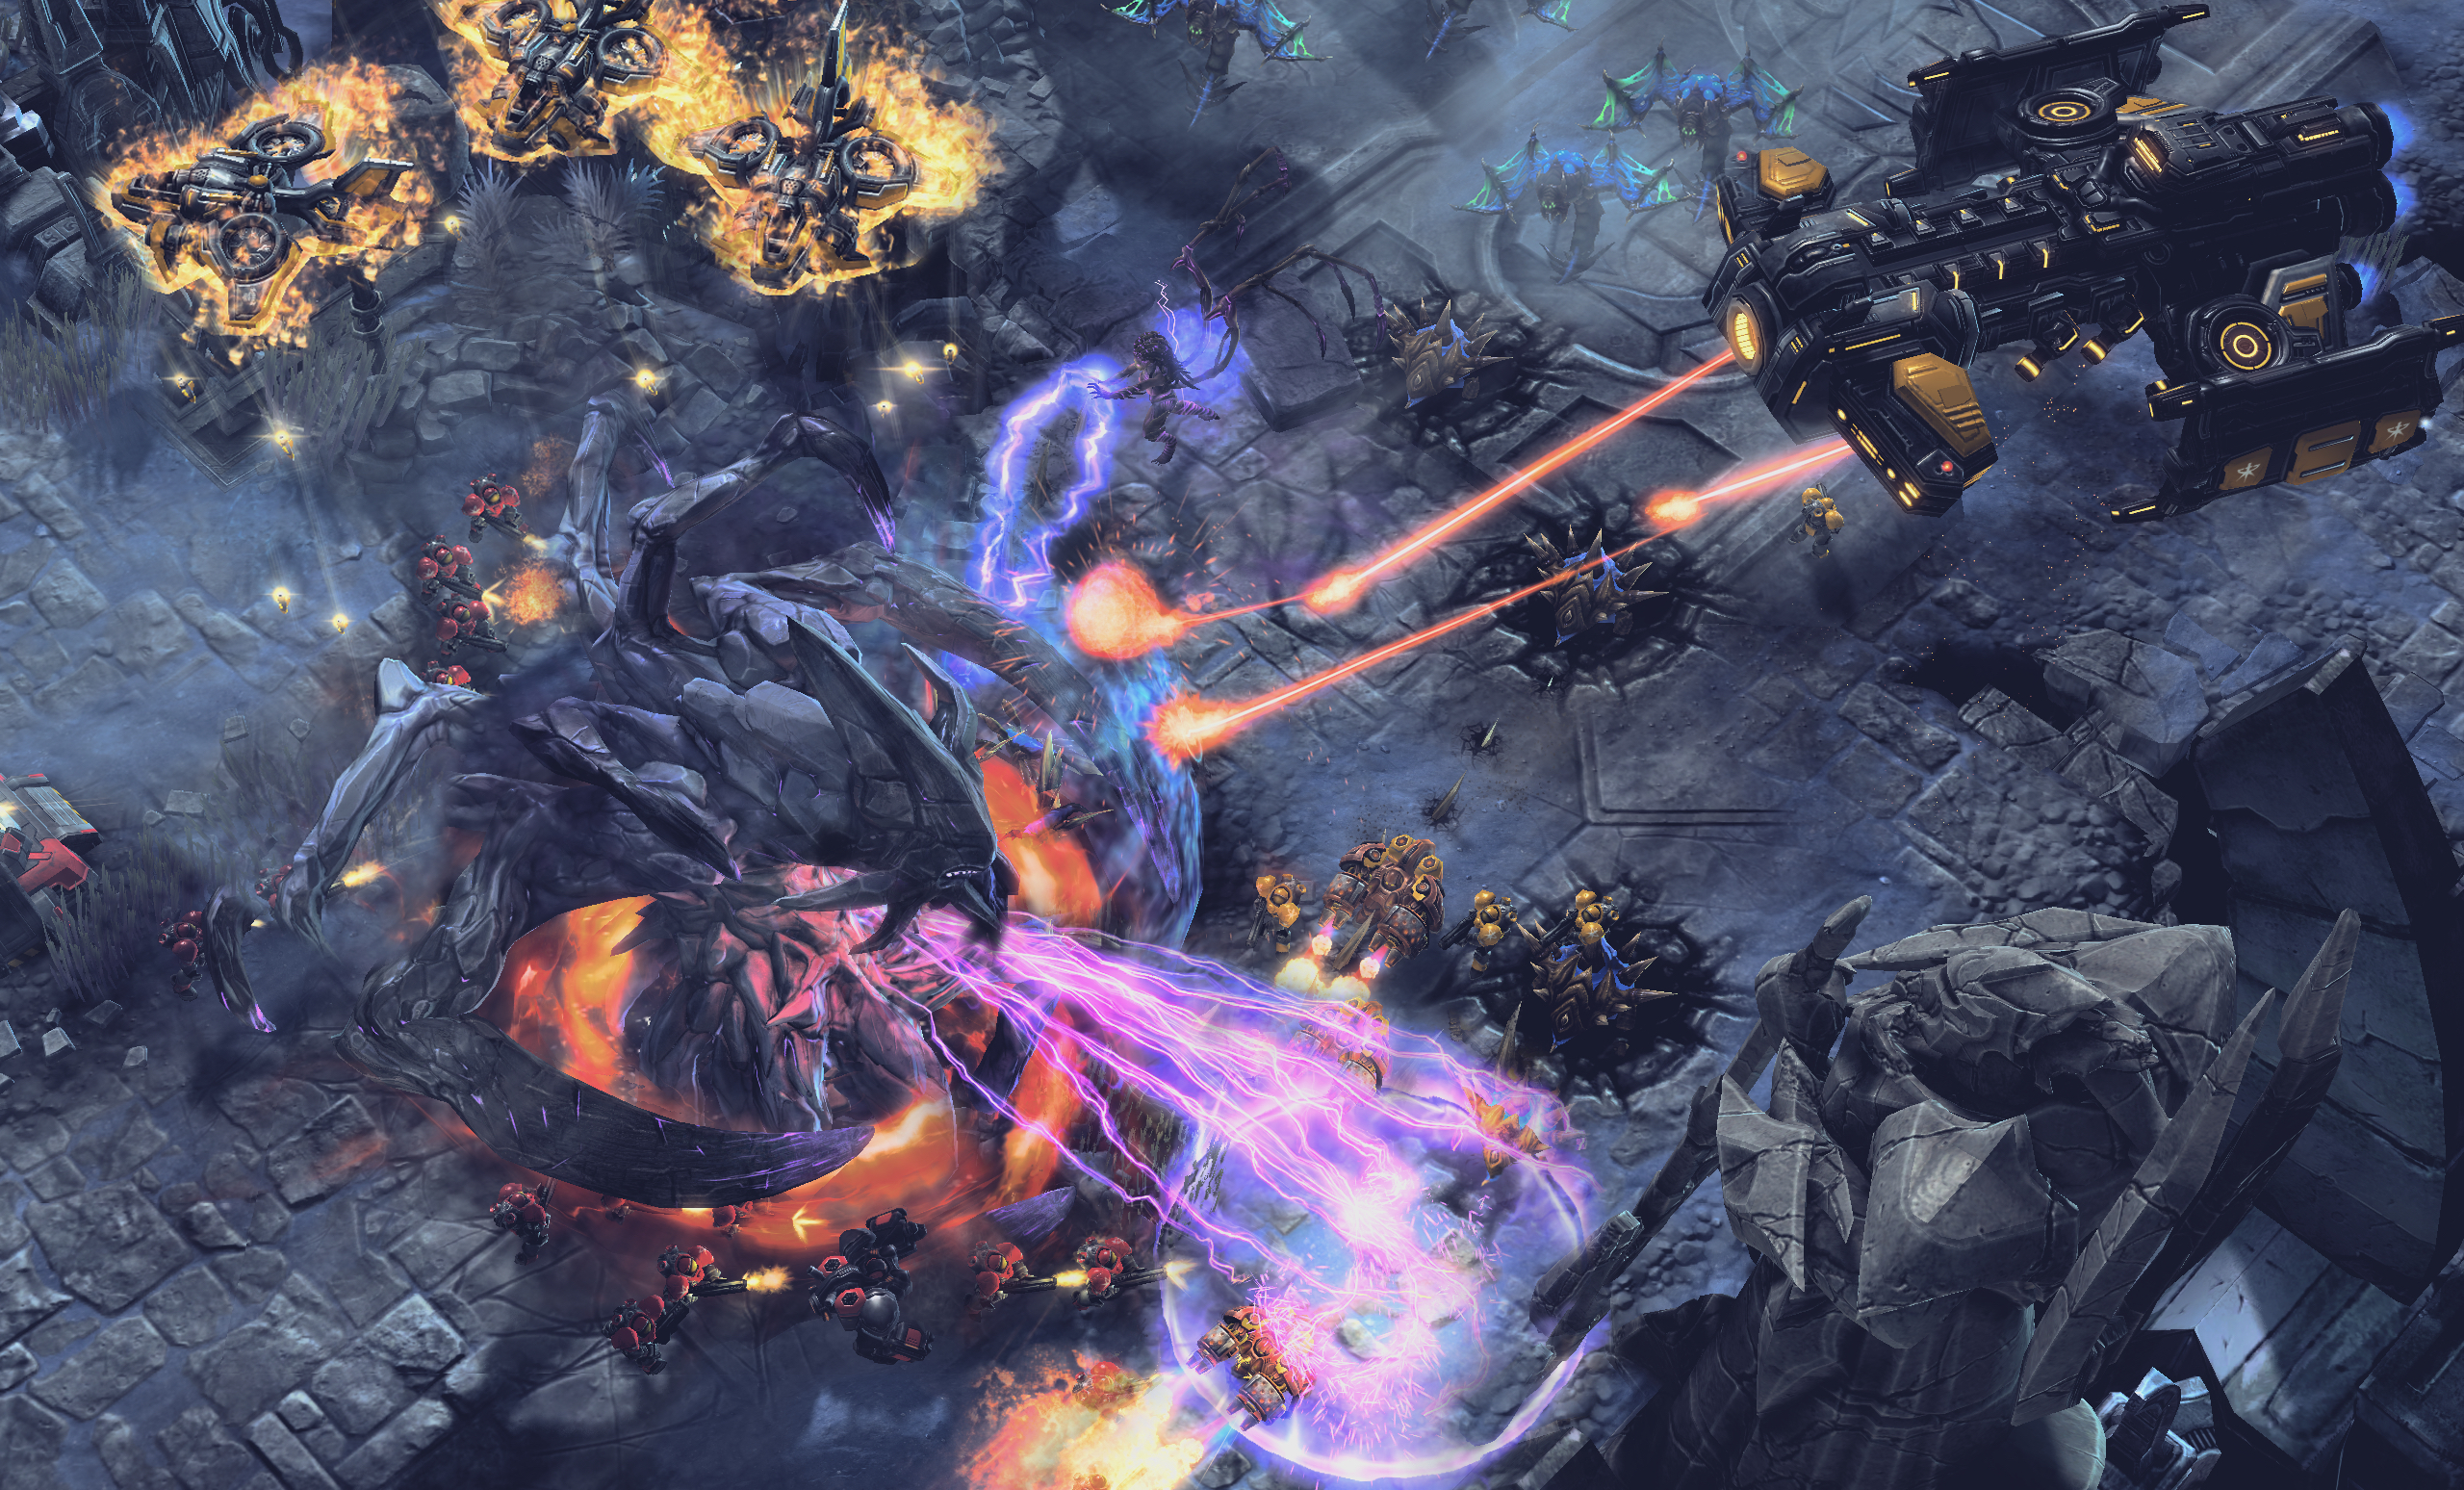 Big battles are signature Blizzard RTS design.